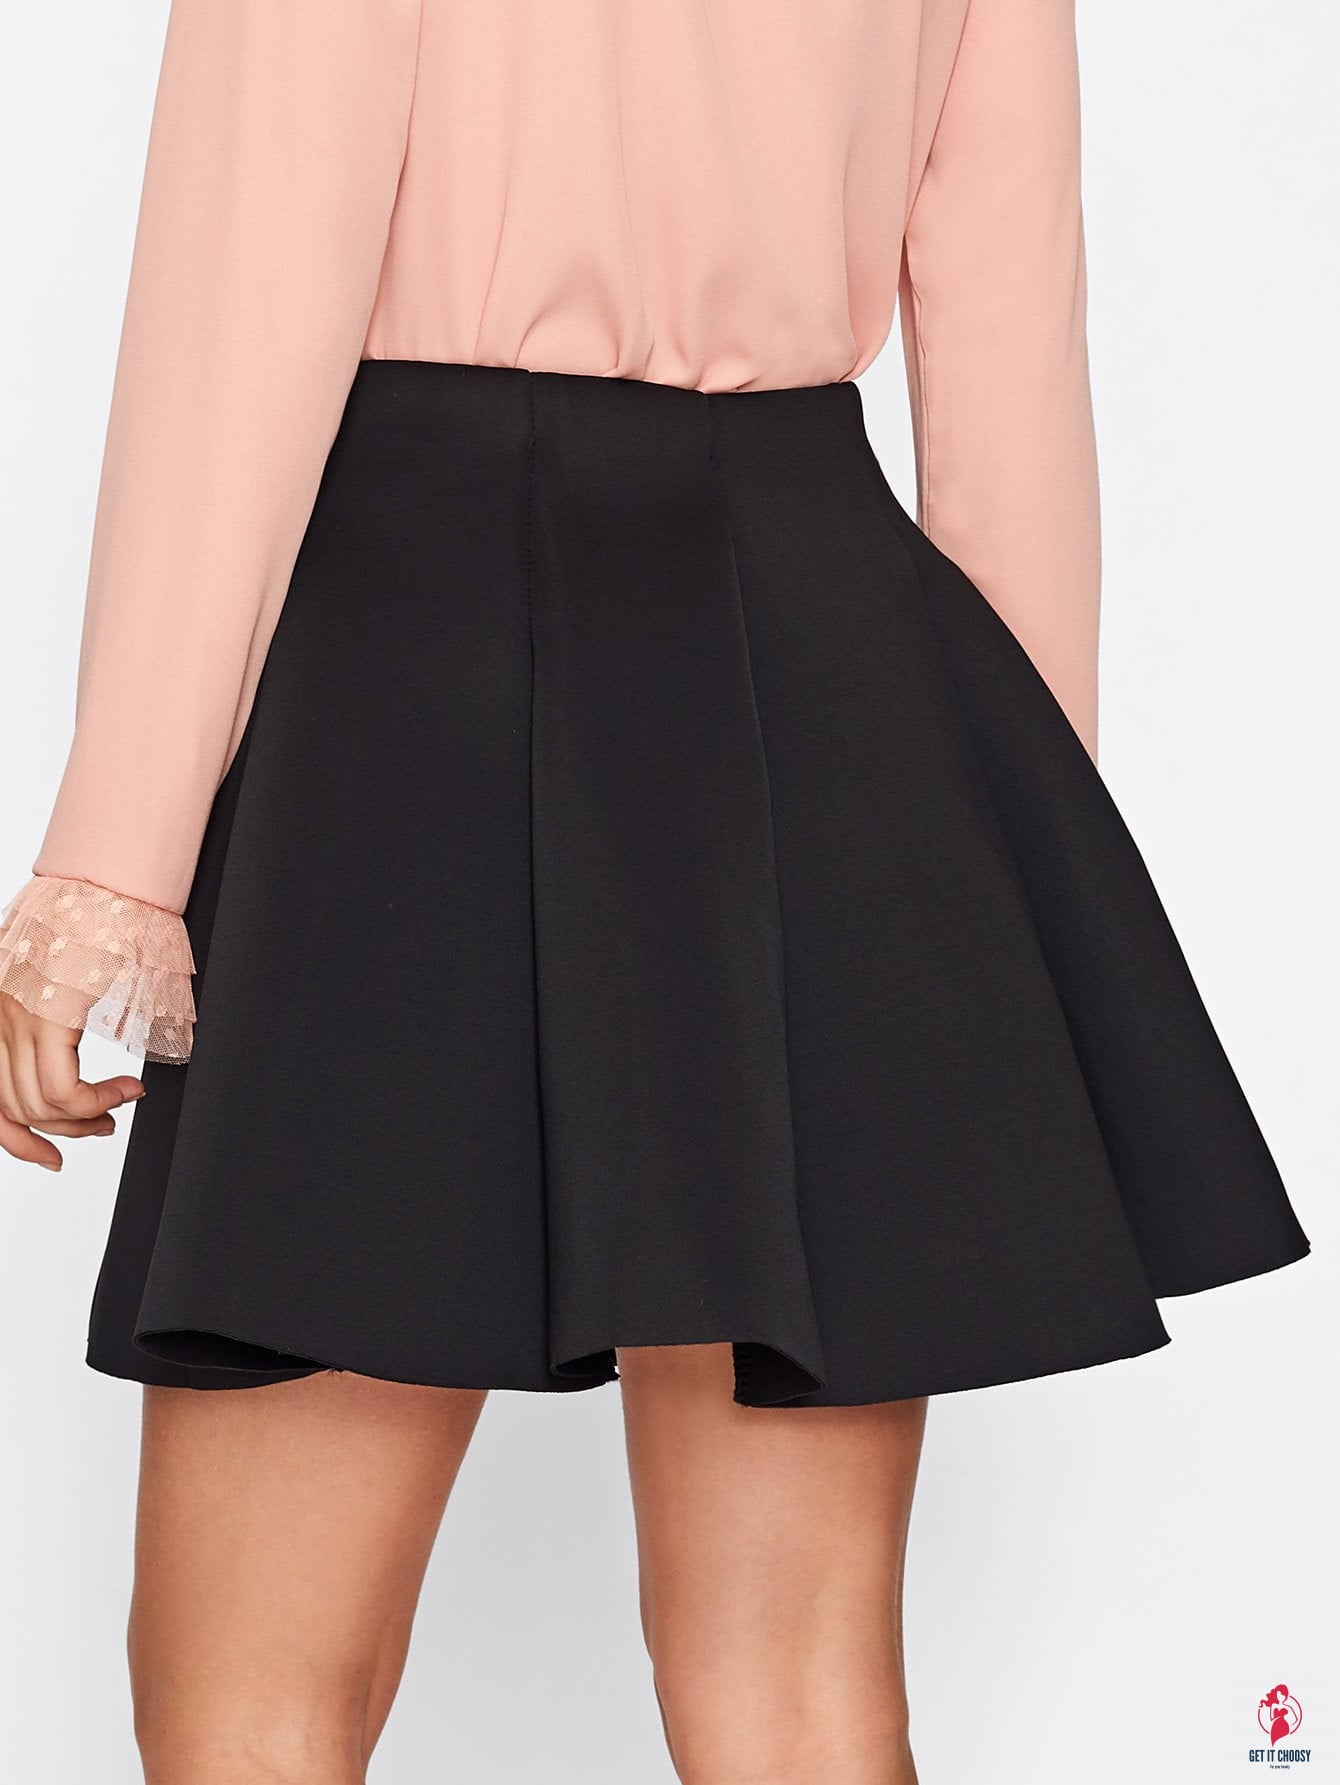 Box Pleated Skirt by Getitchoosy